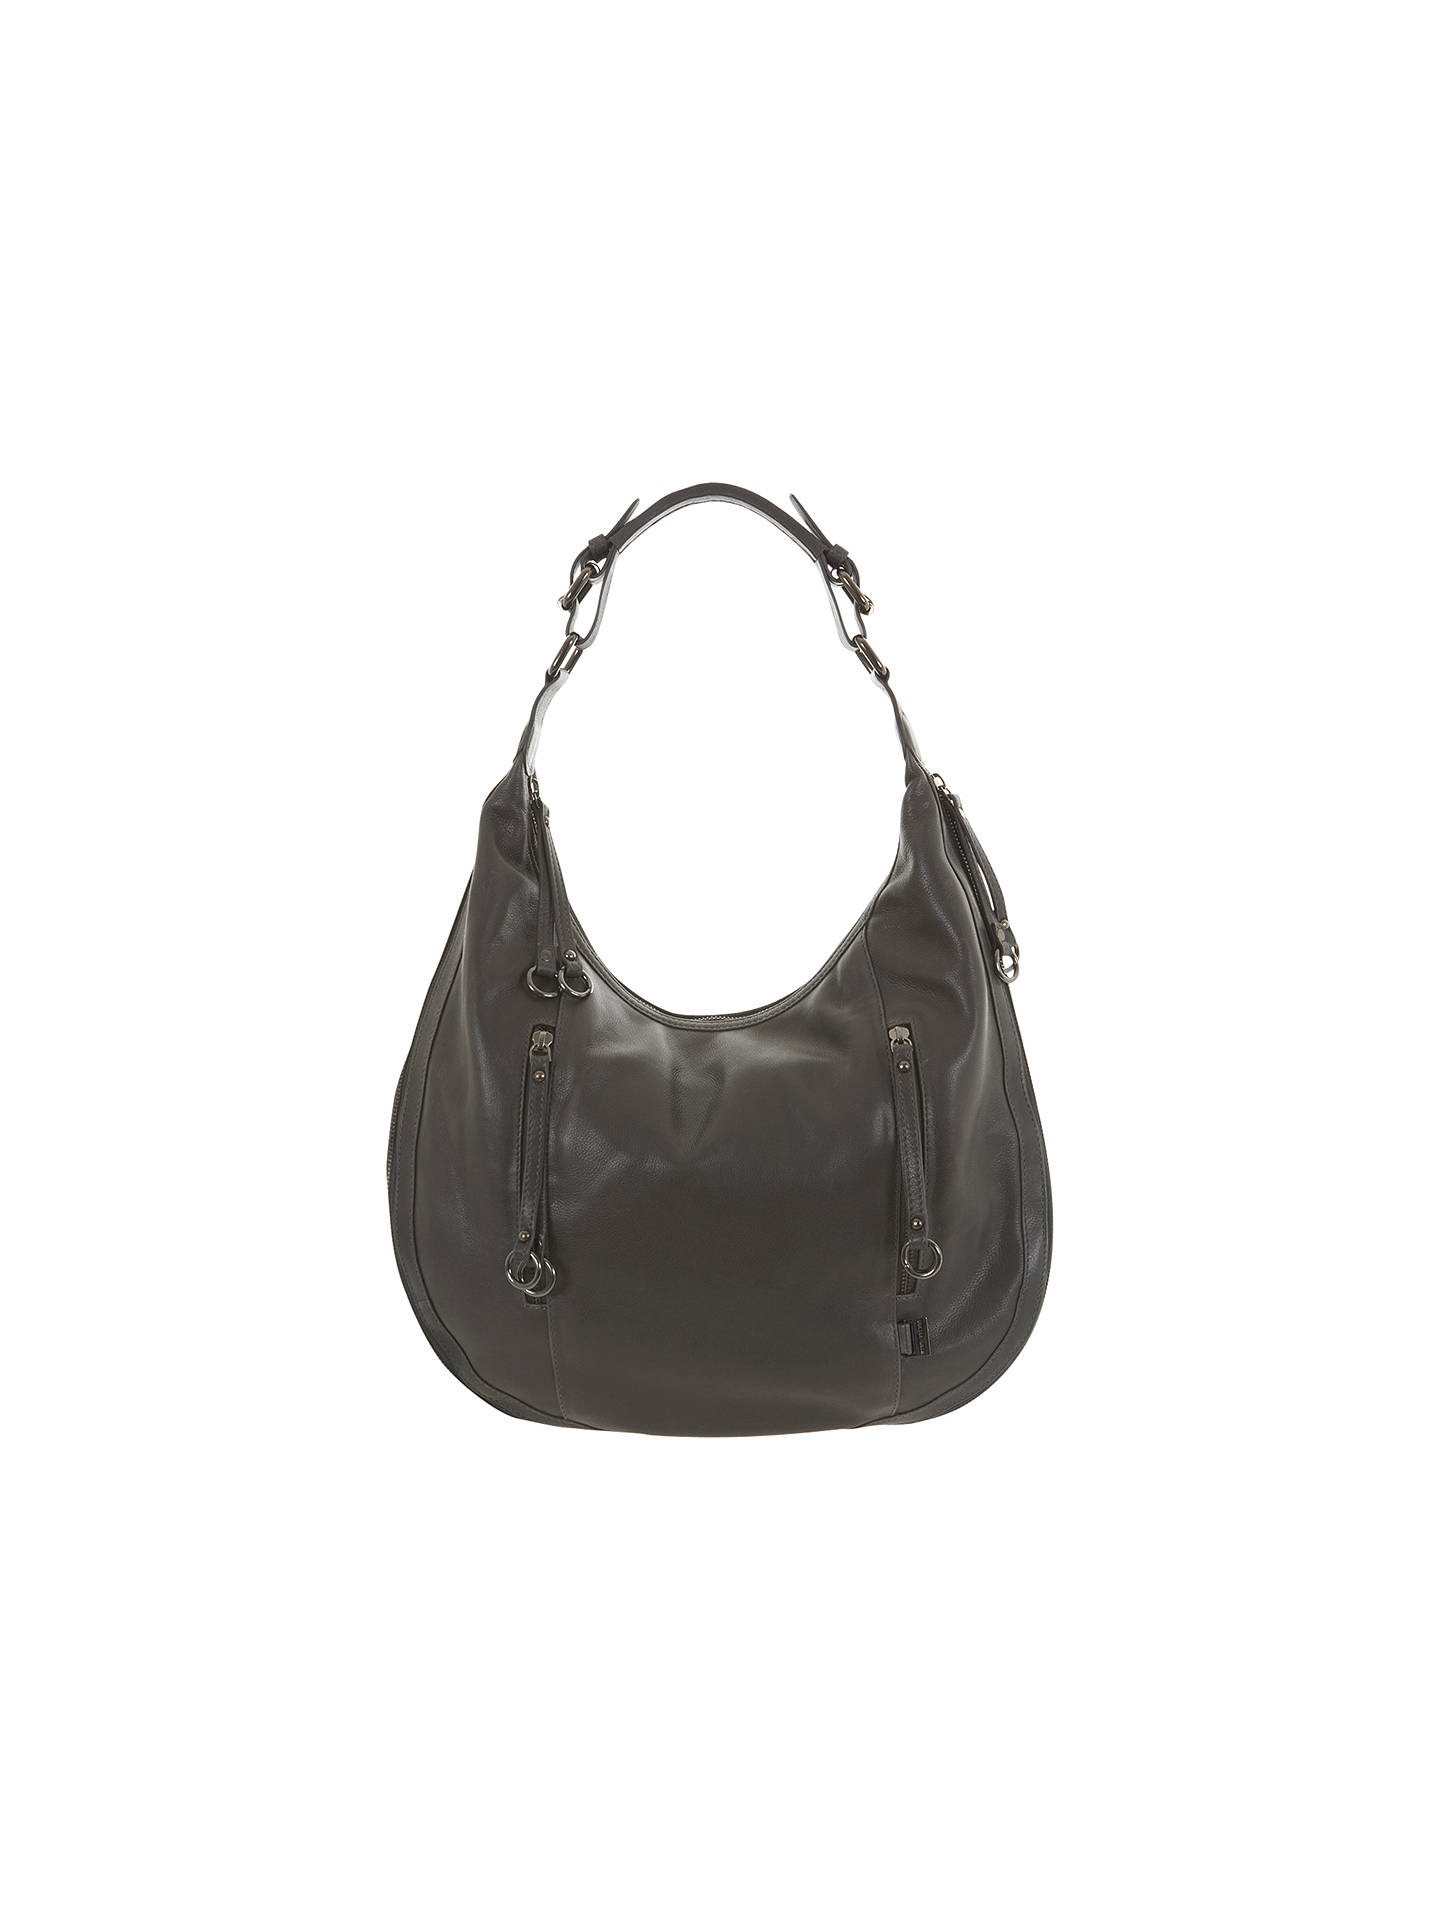 Mint Velvet Leather Suede Hobo Bag Grey Online At Johnlewis